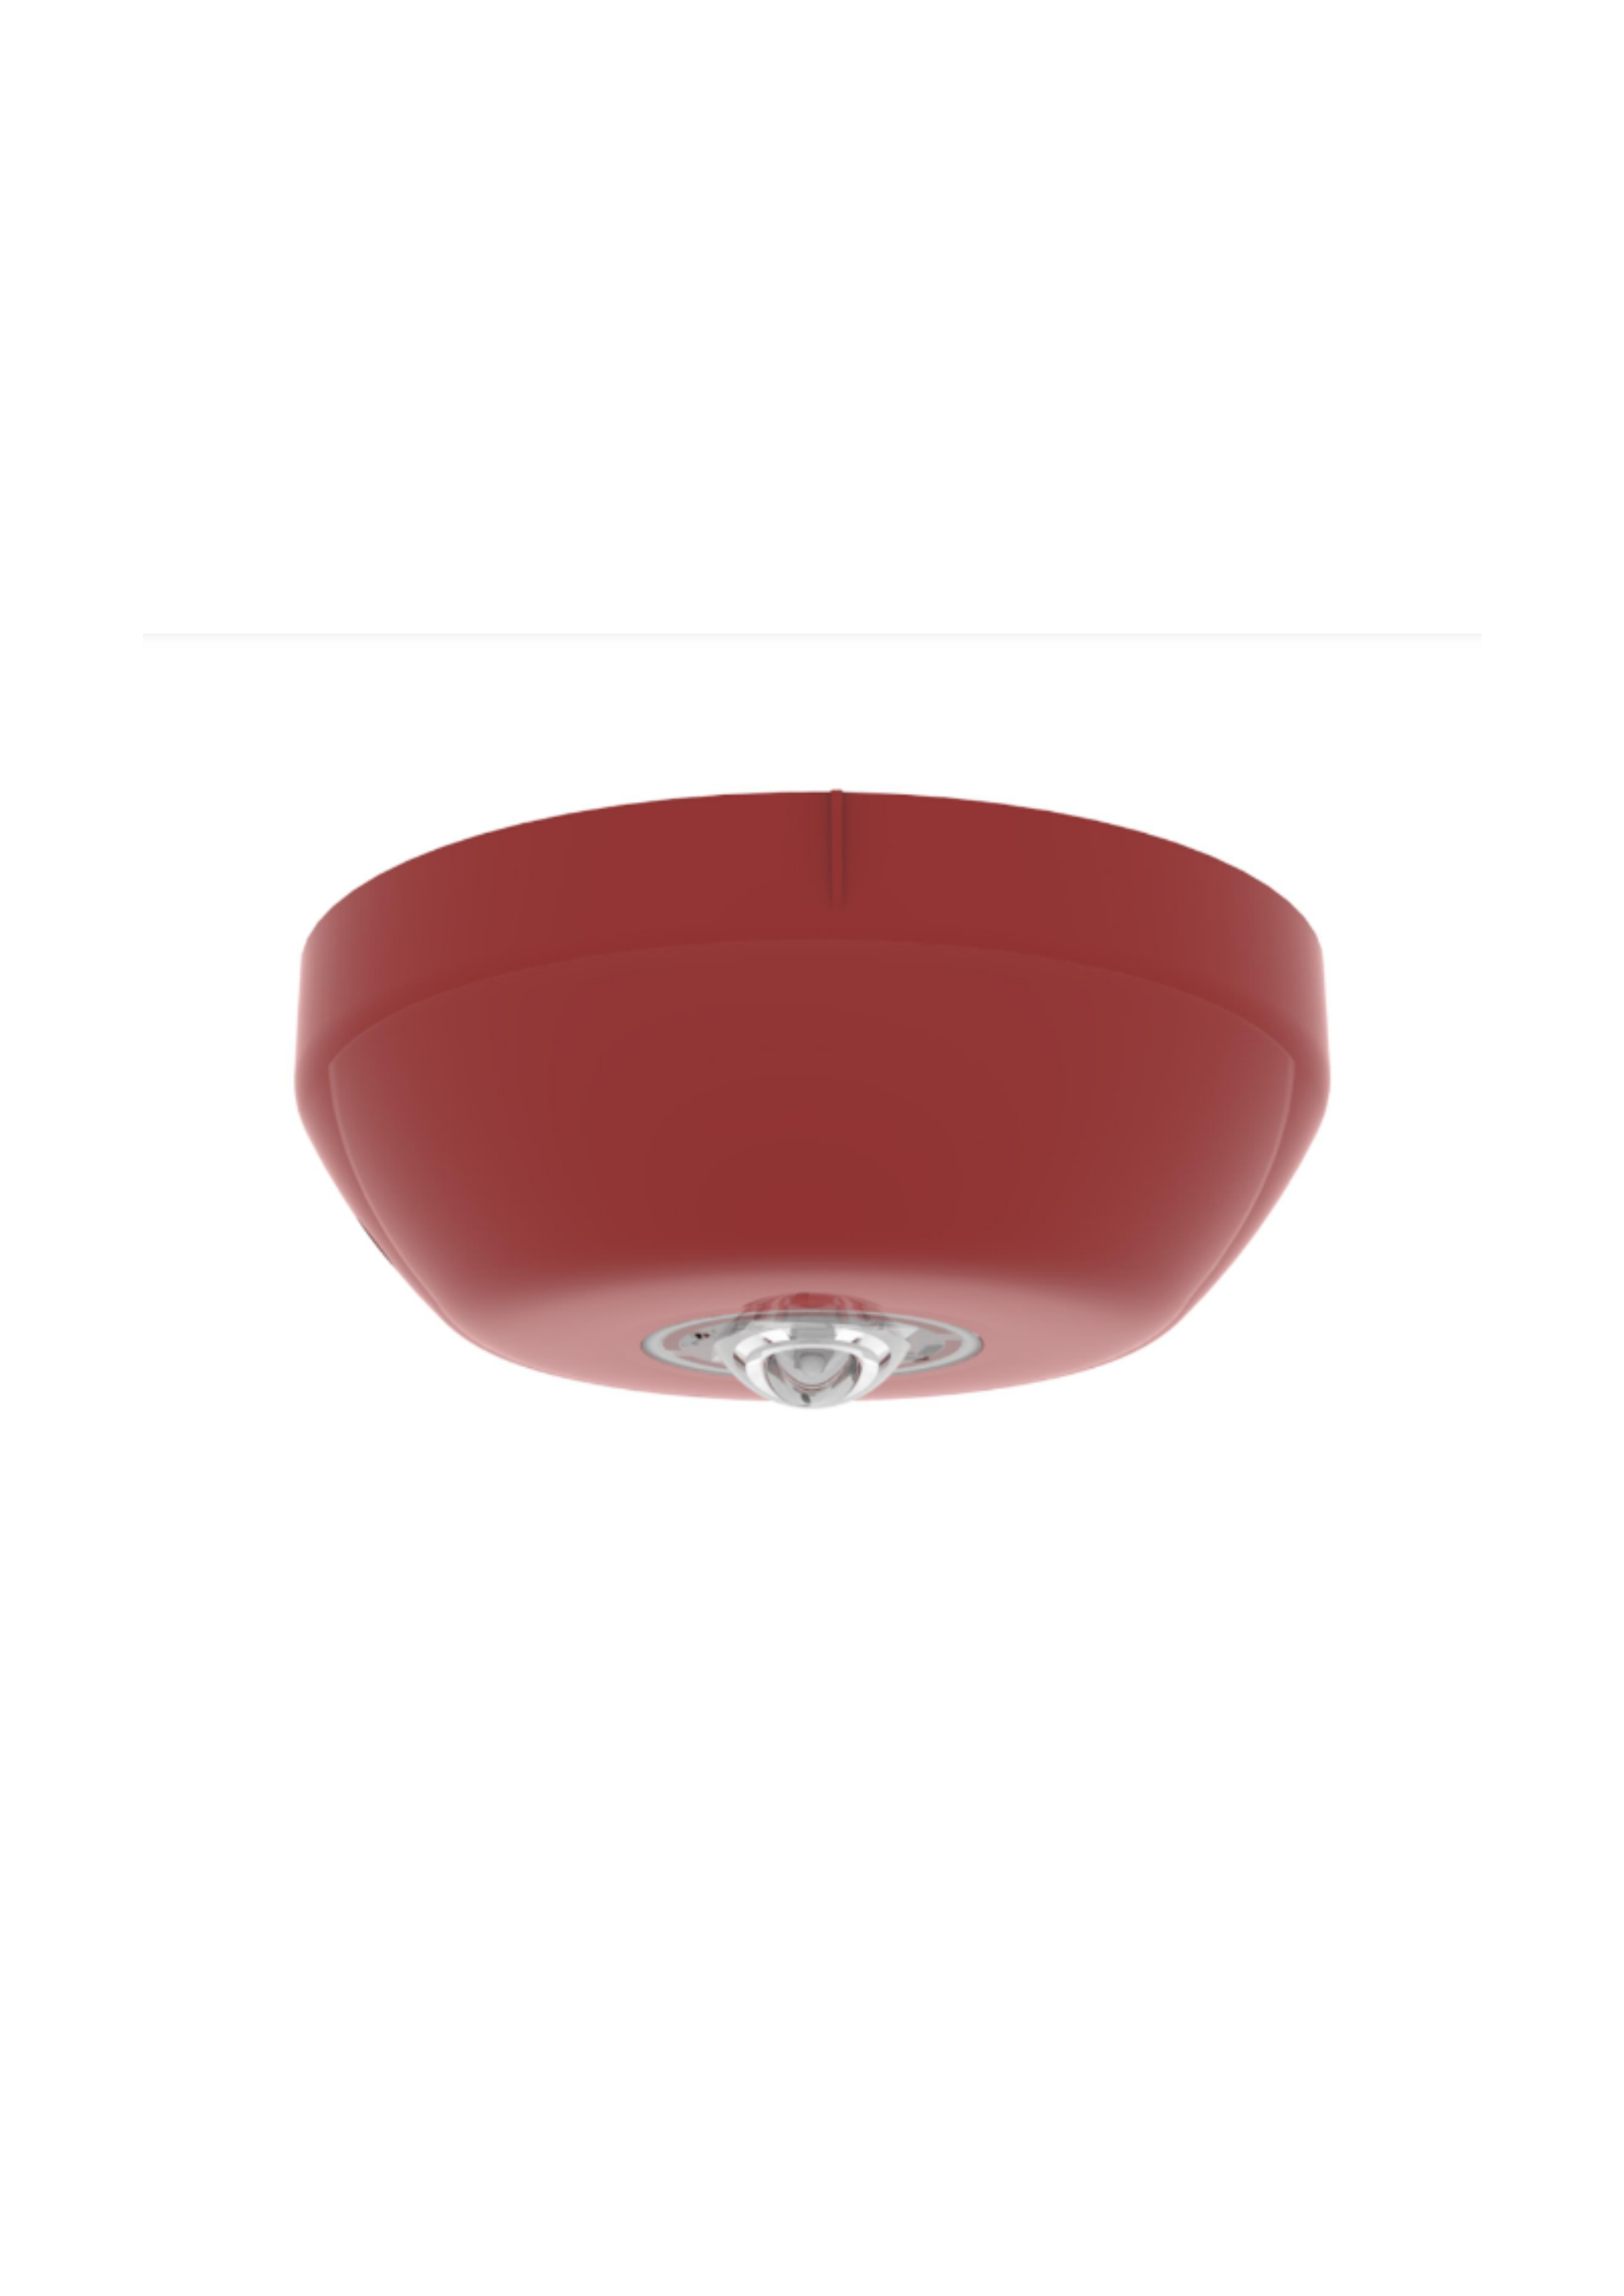 Ceiling Beacon - Red case, white LEDs (15m) 146022...